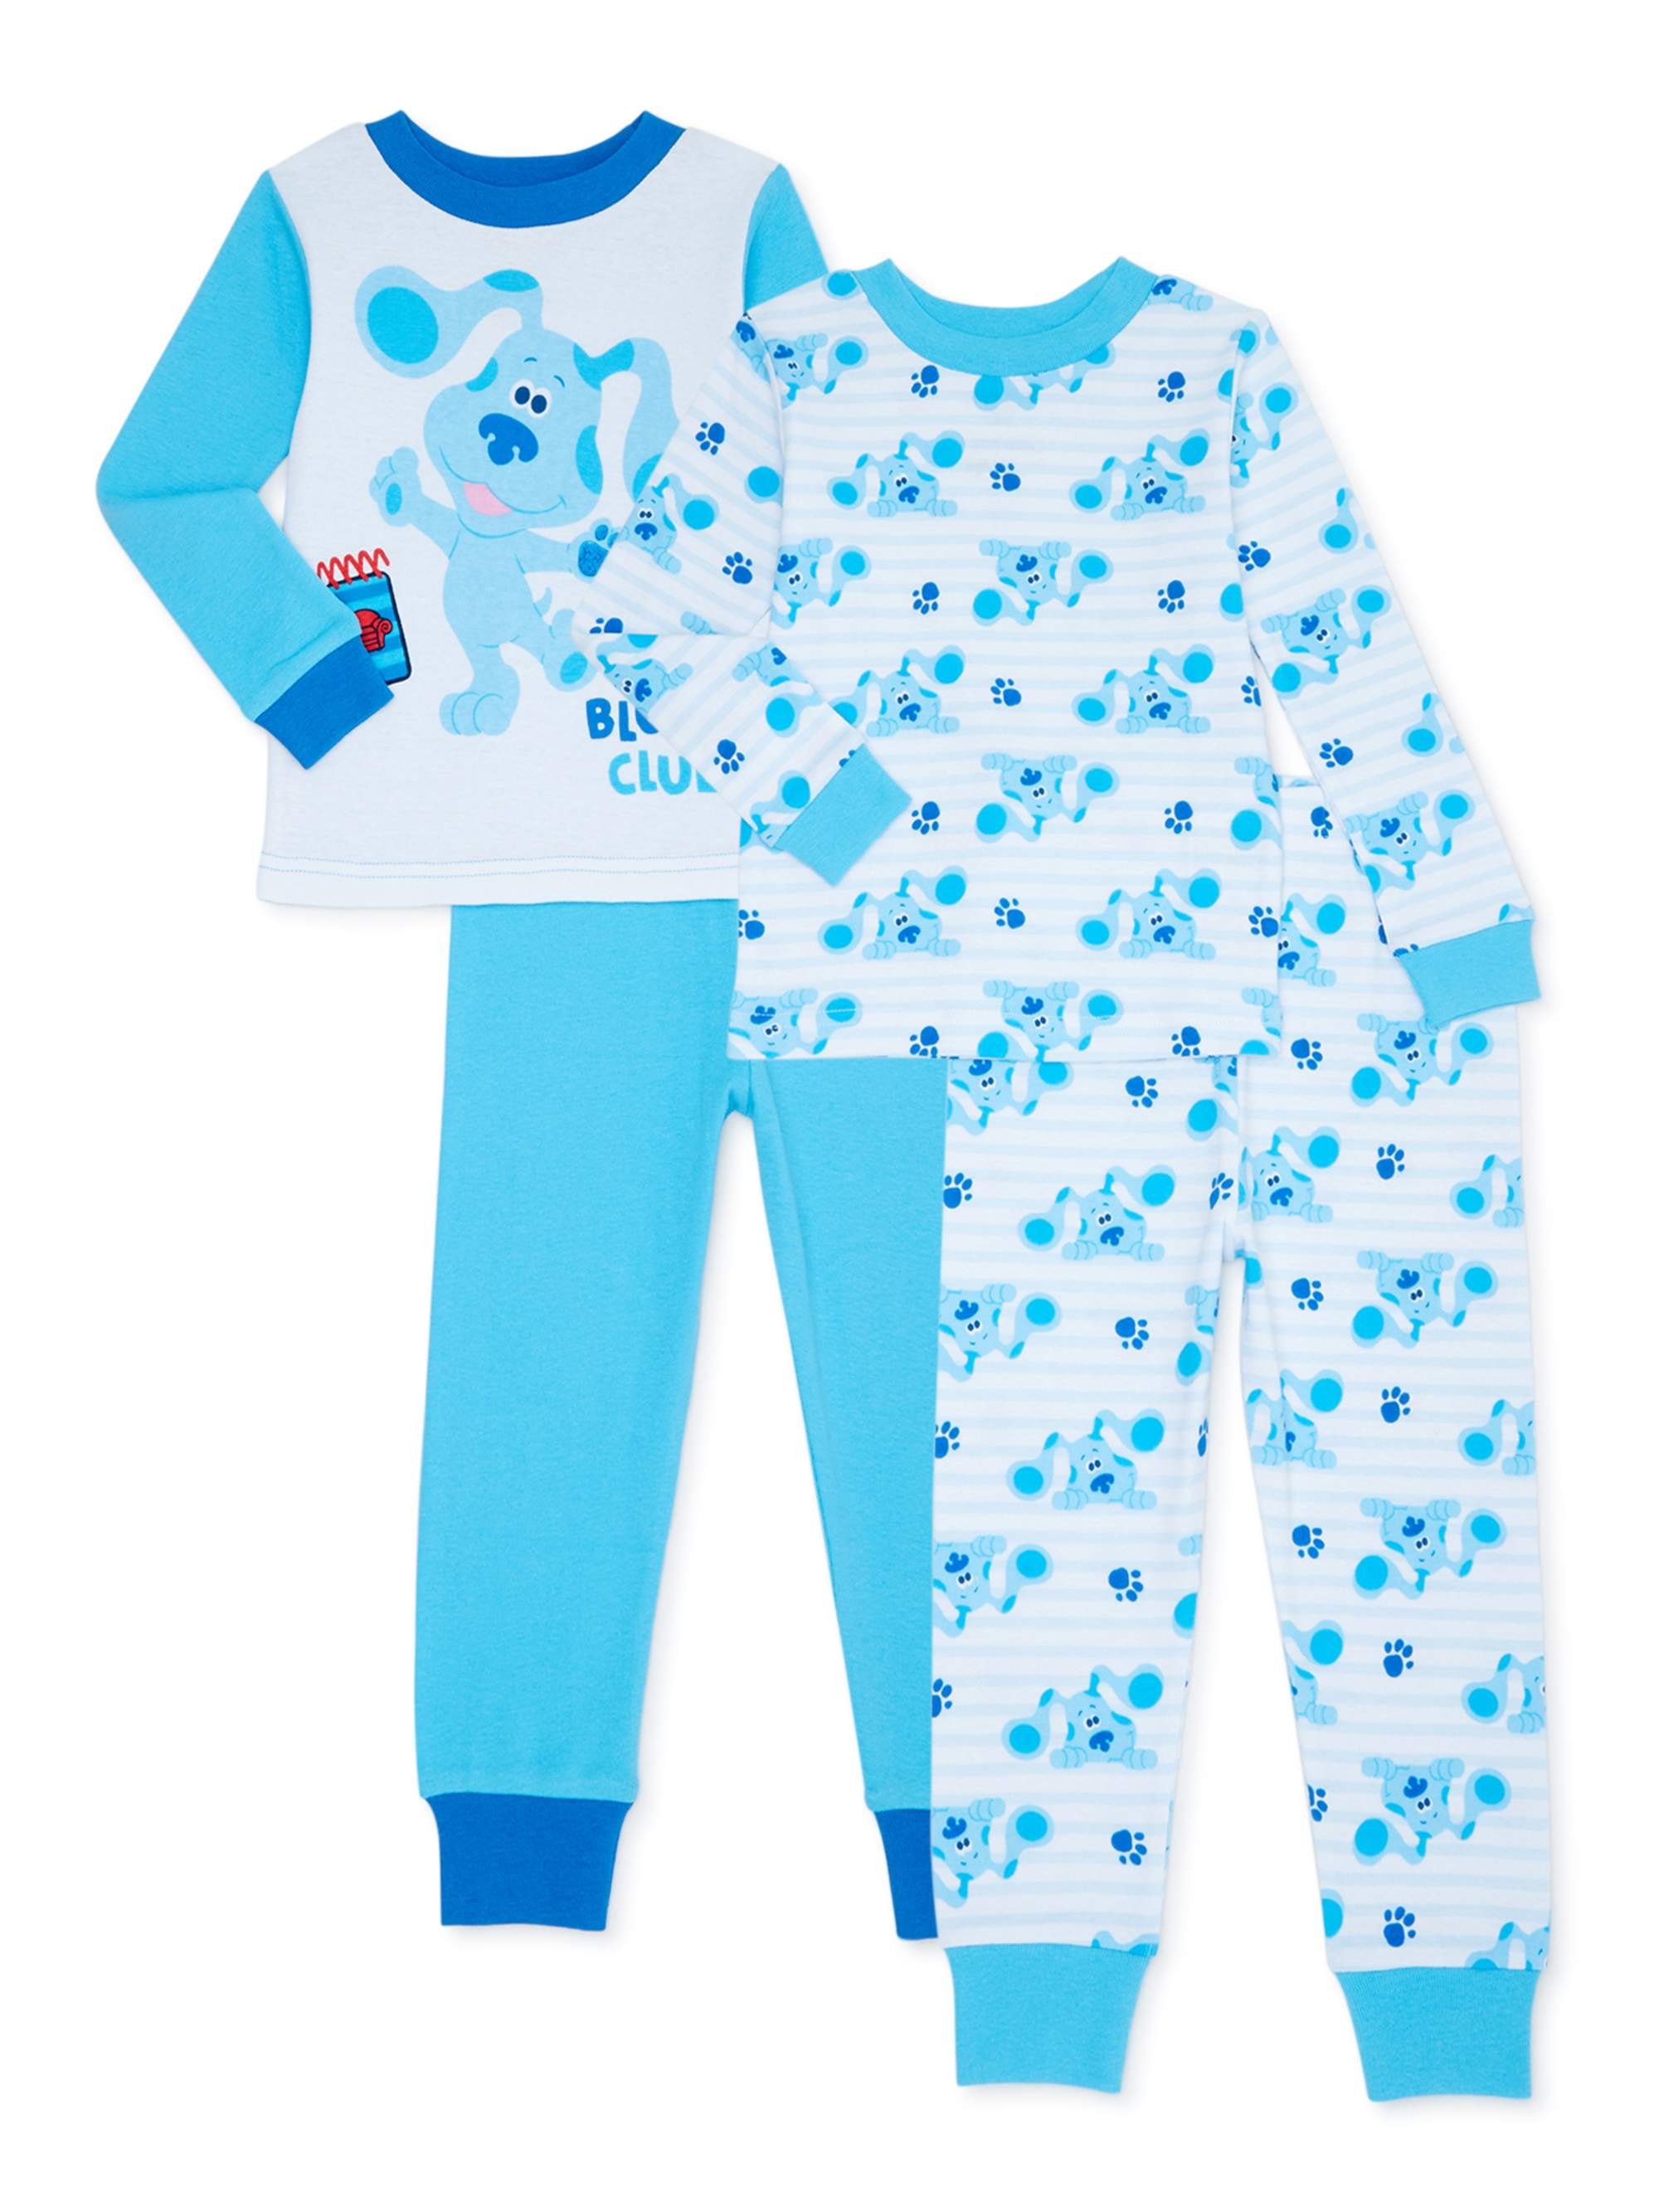 Nickelodeon Boys Blues Clues 4-Piece Pajama Set